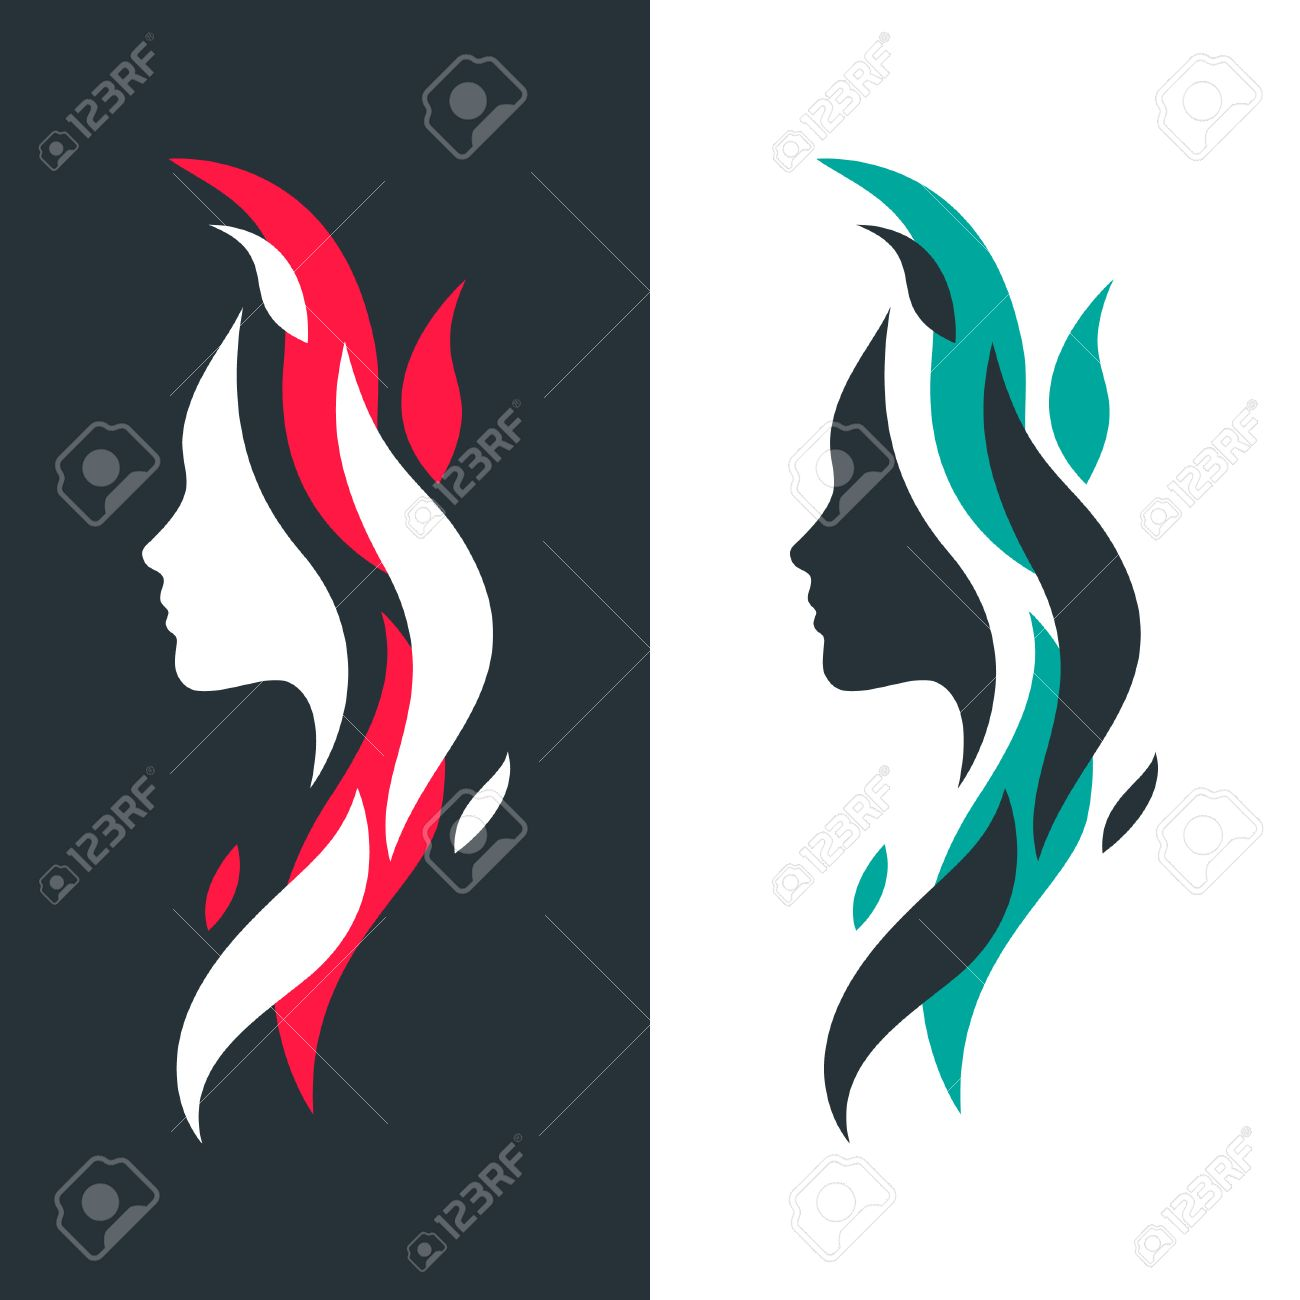 set of female profiles with abstract colorful waves vector logo rh 123rf com vector logo free vector logo file